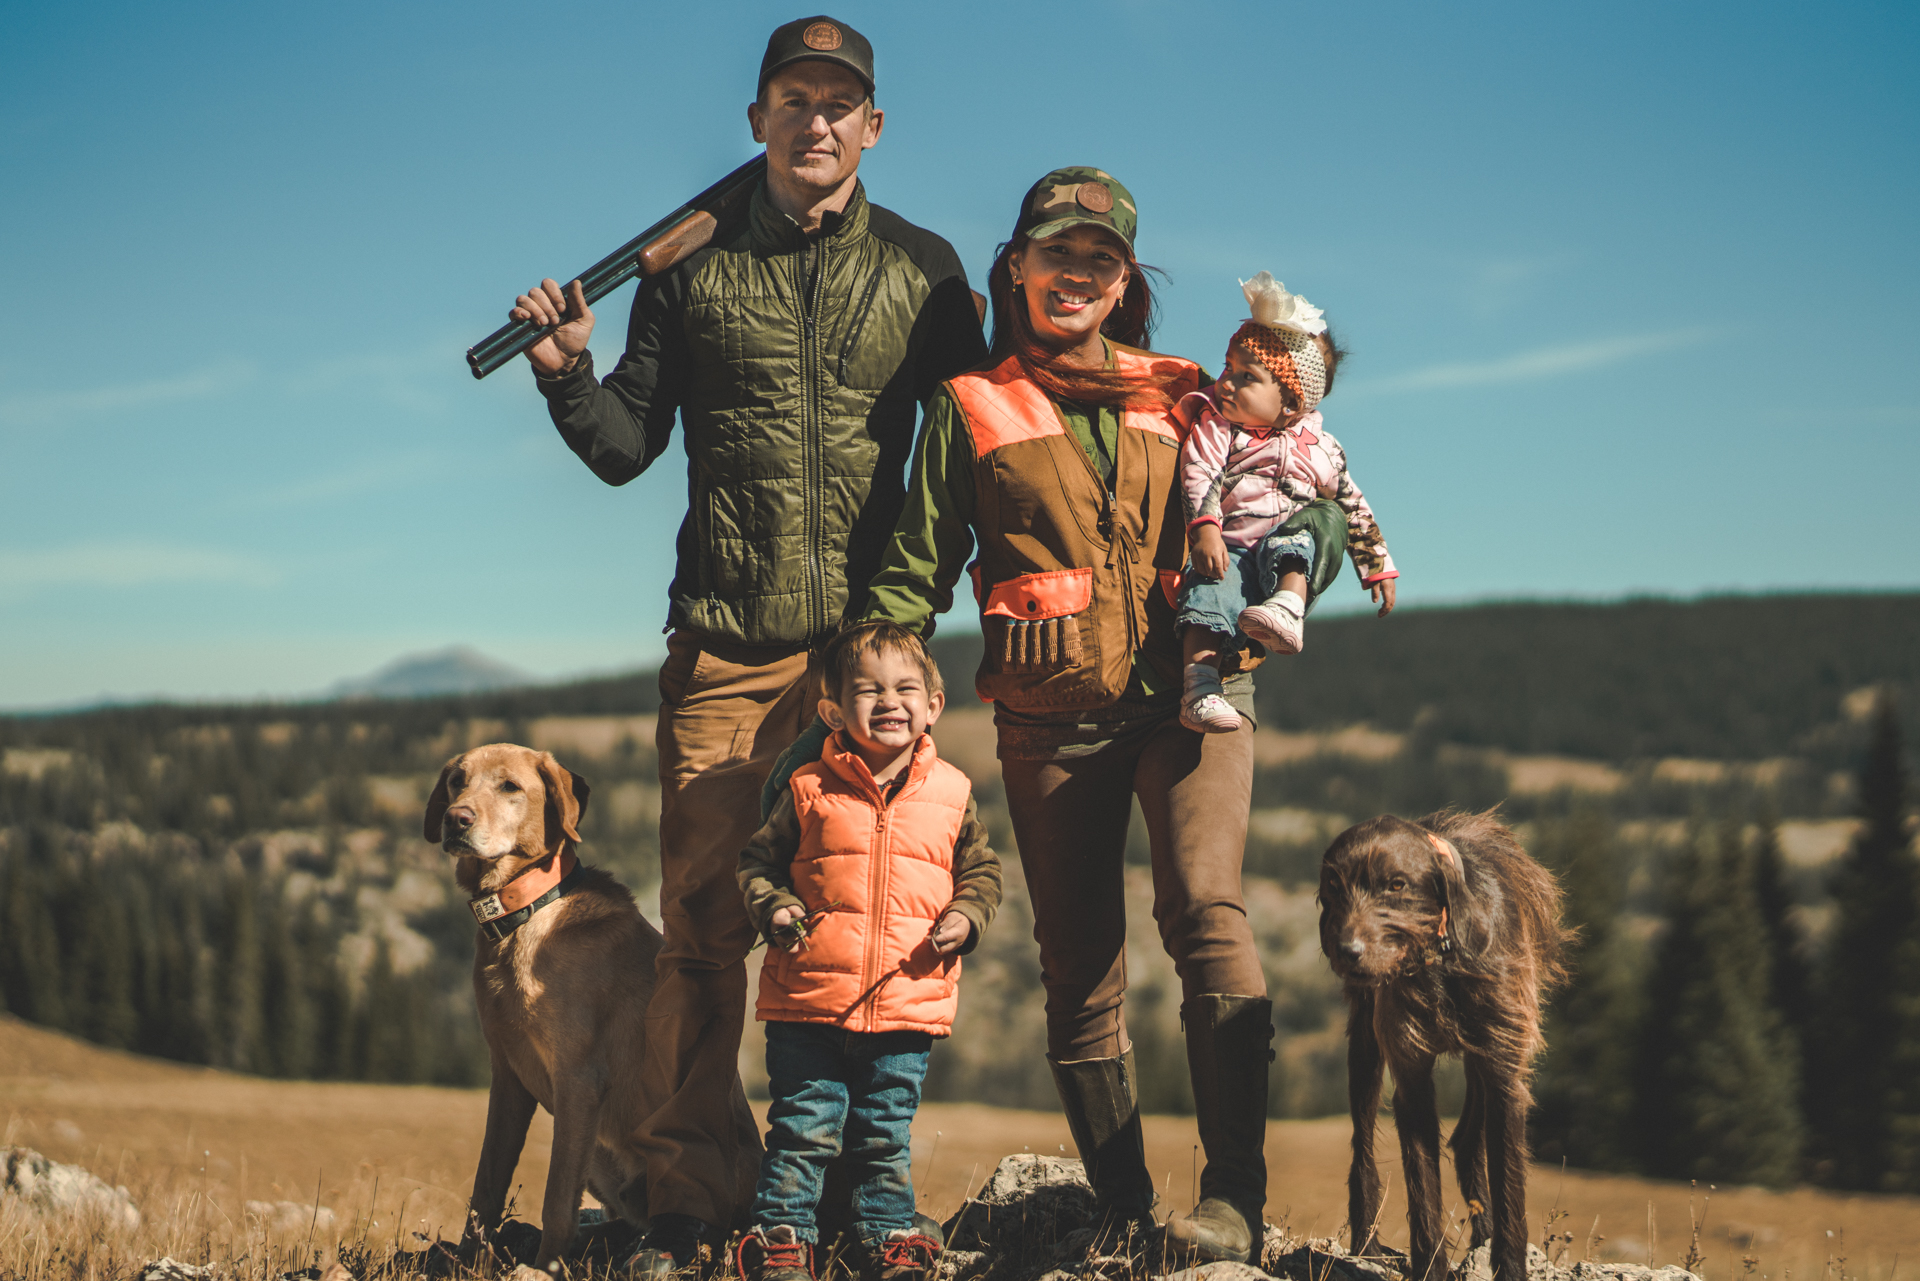 I took our family photo in grouse country because we hunt as a family. We were wearing our hunting clothes and I had my double barrel over my shoulder to help tell our story.